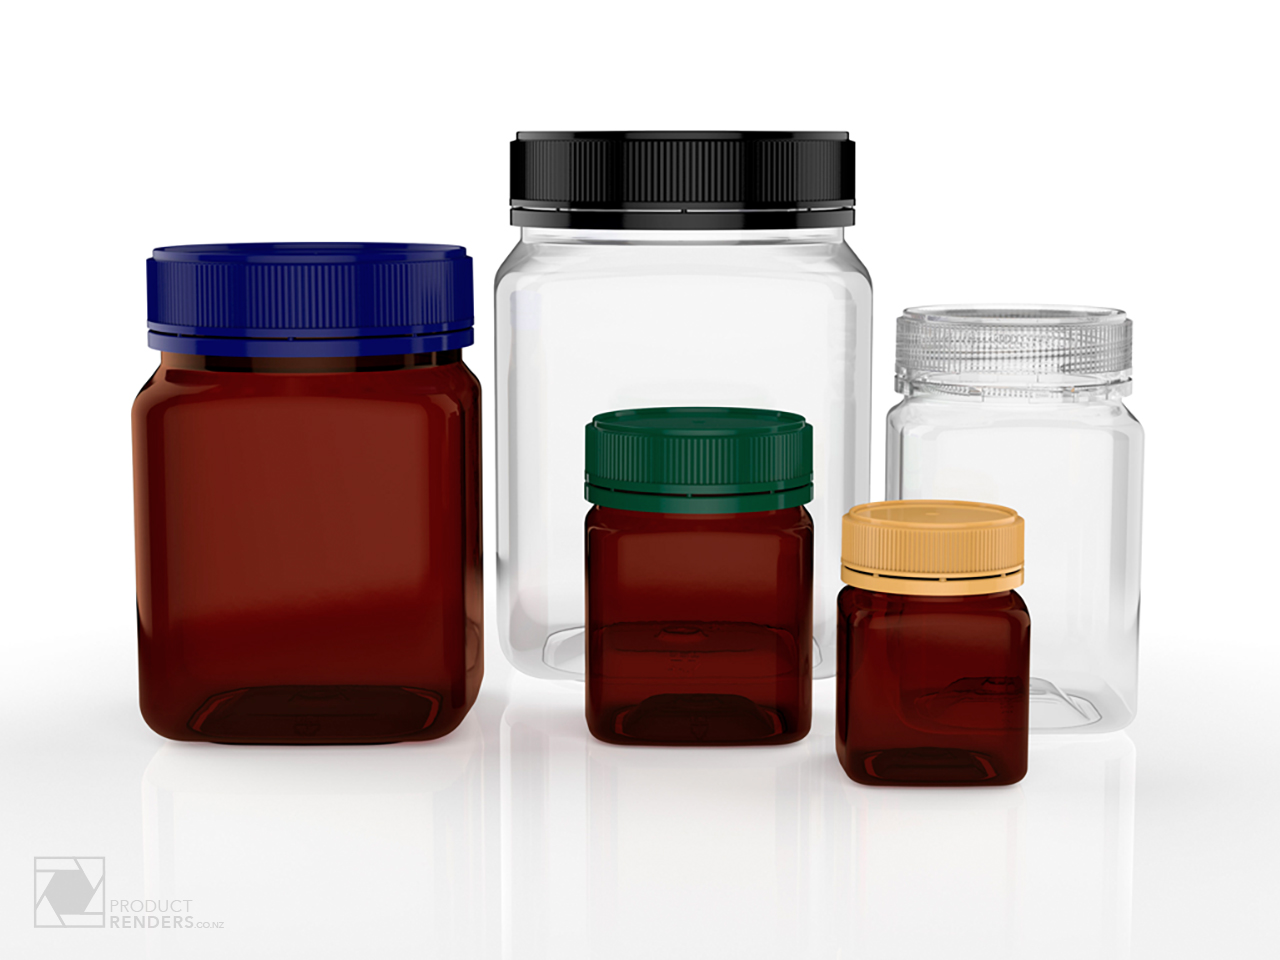 3D render of a Pharmapac jar for use in their corporate brochure and website